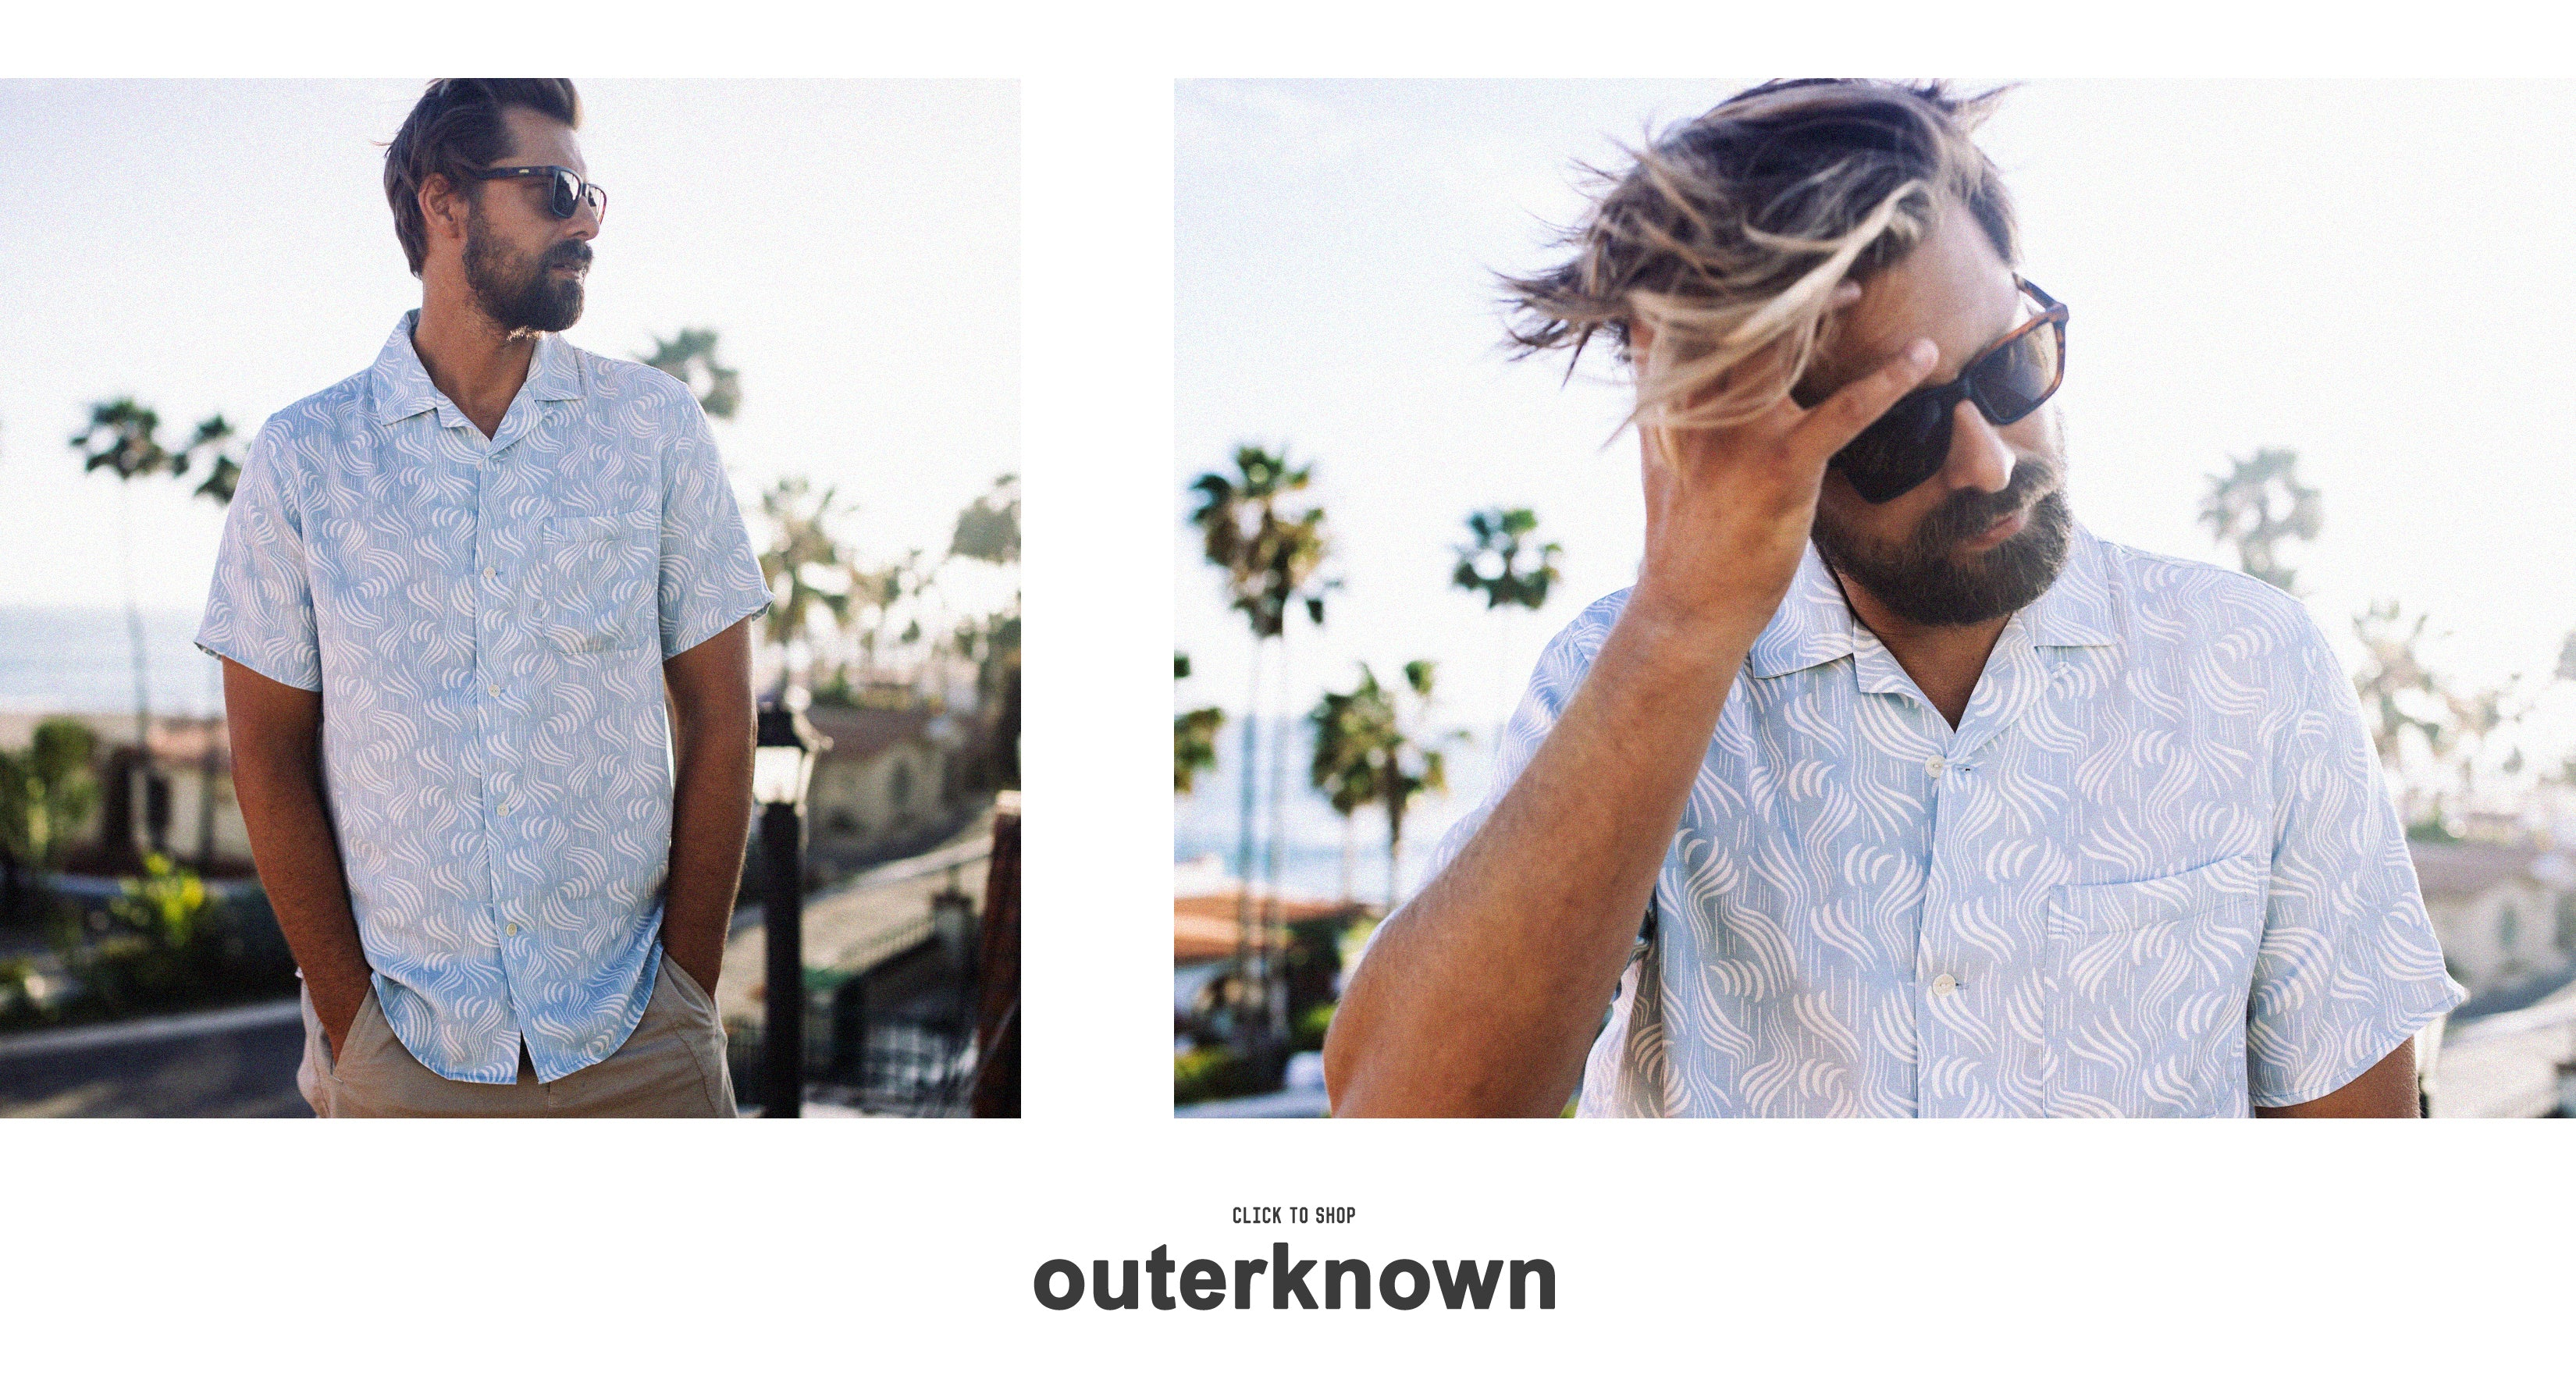 Aloha Beach Club for Outerknown shot by Kahana Kalama